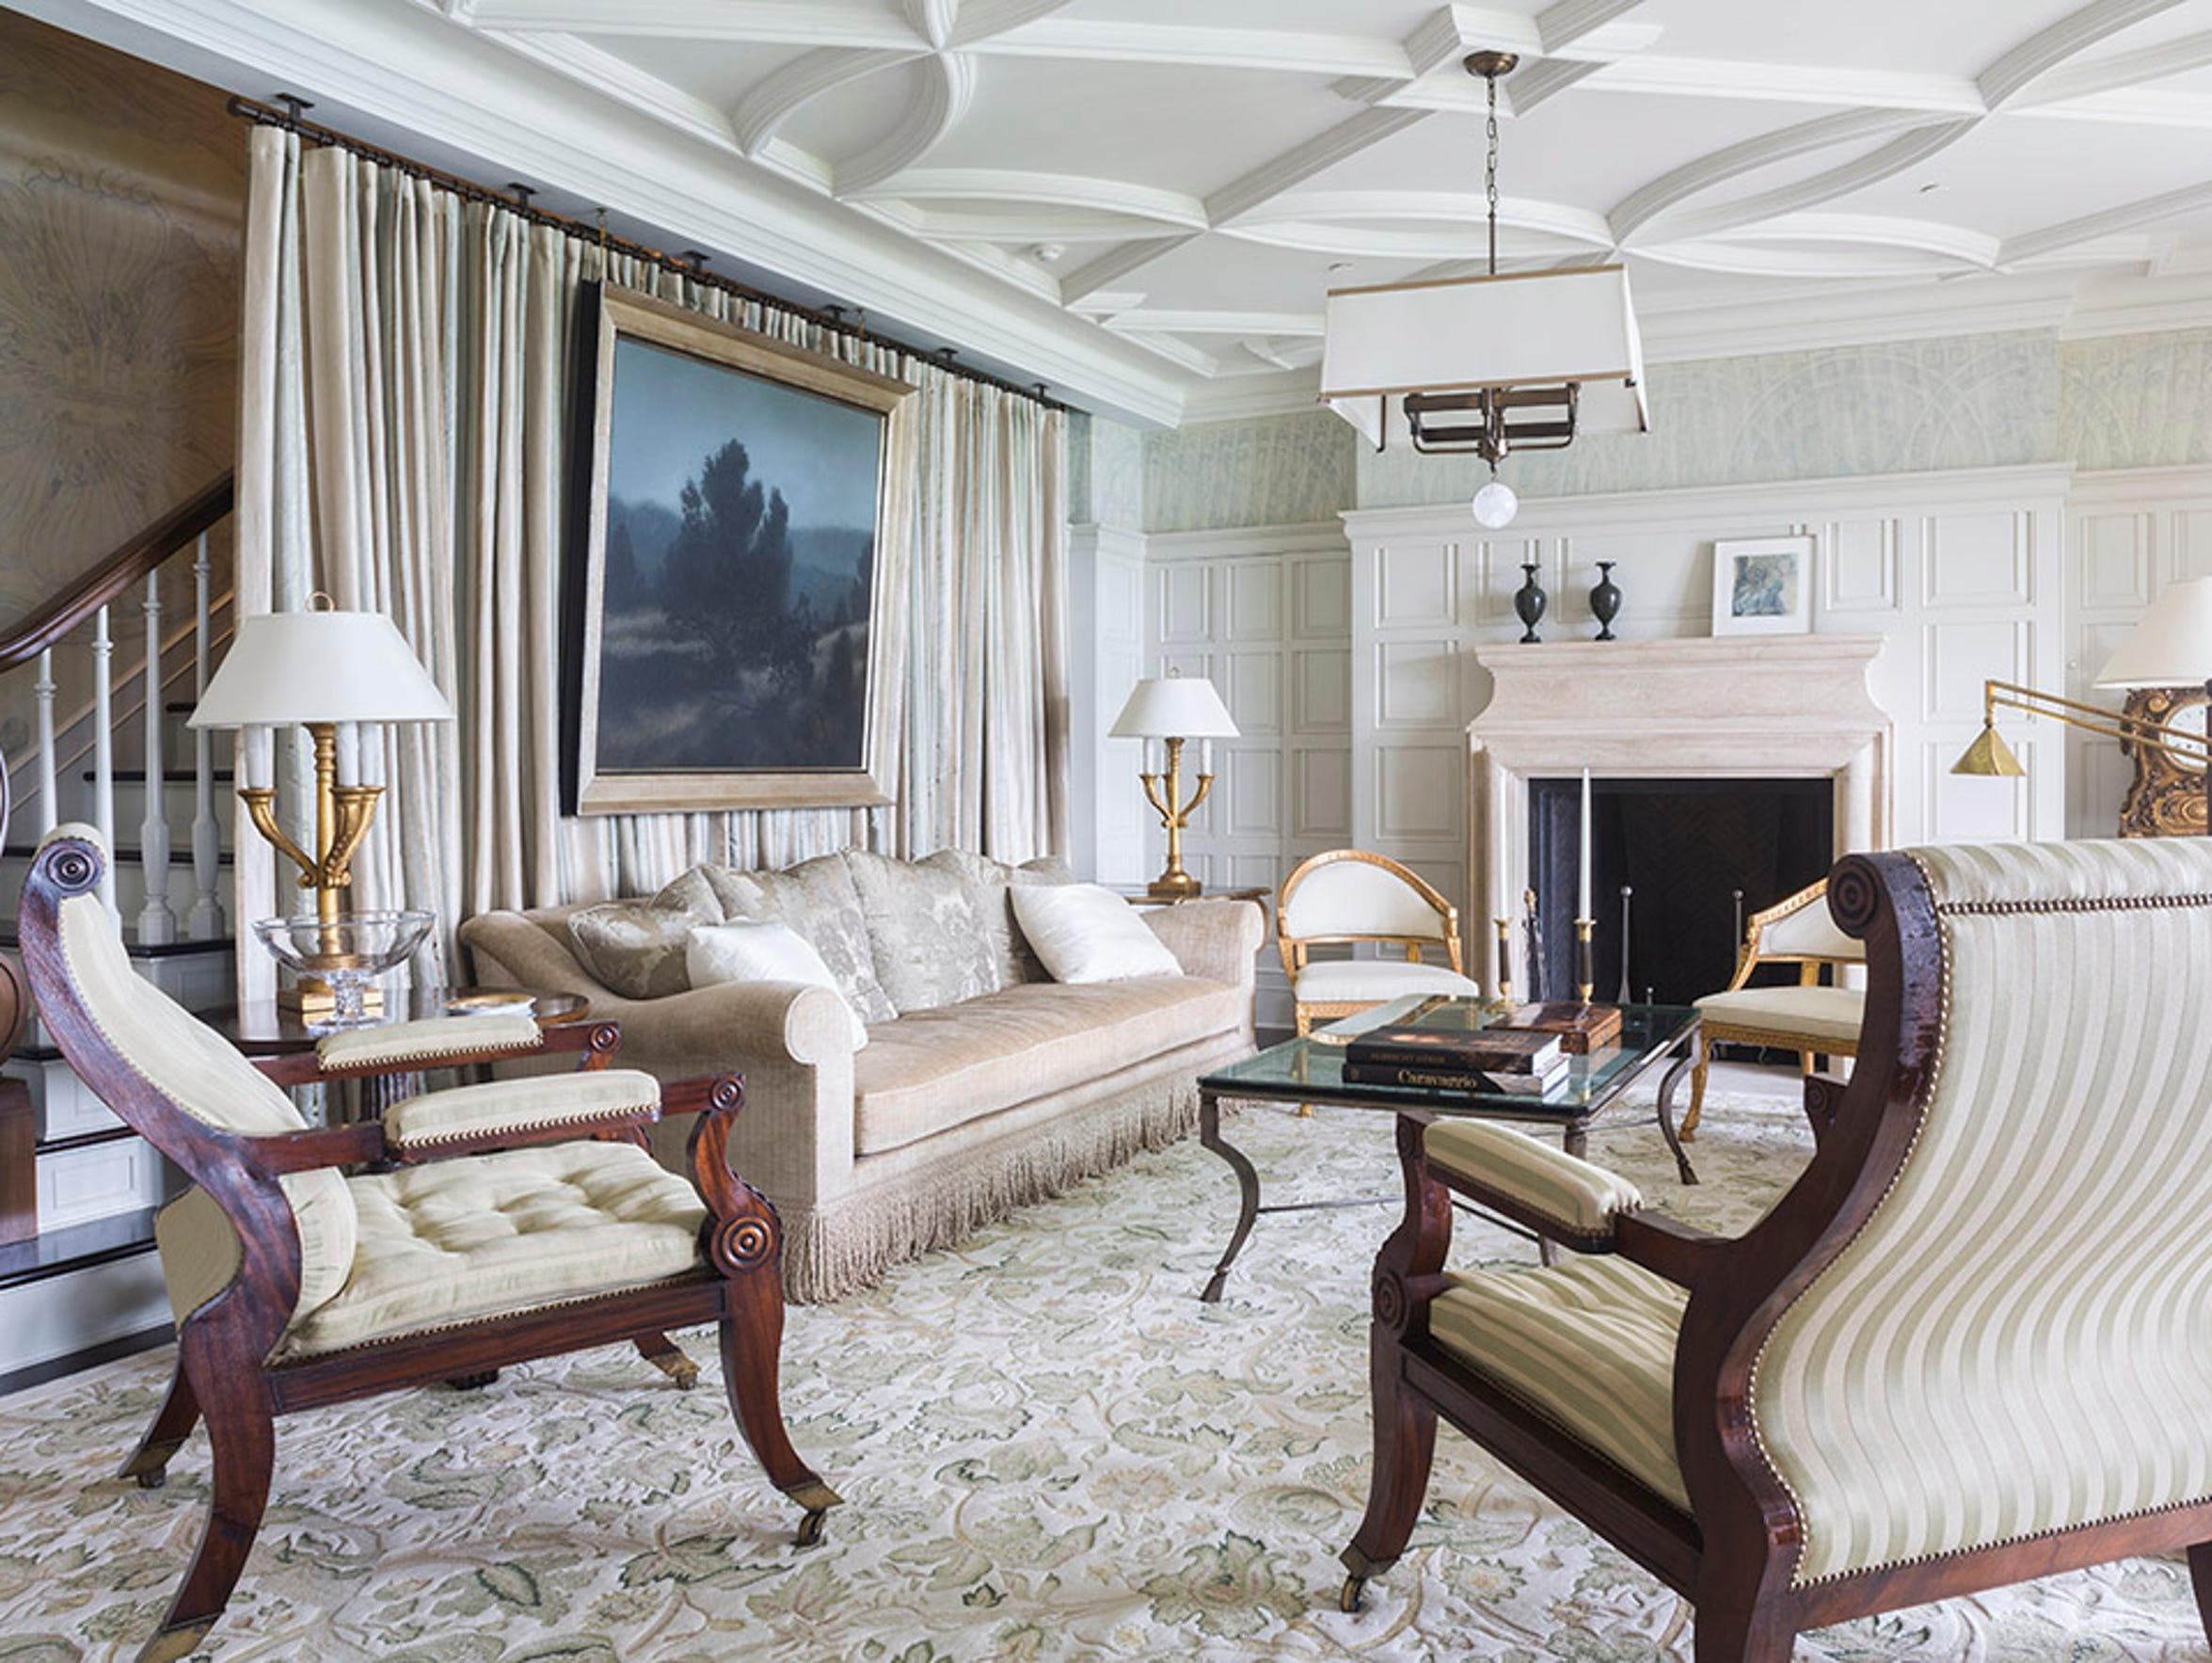 Every room is finely crafted and detailed in the Weitsman